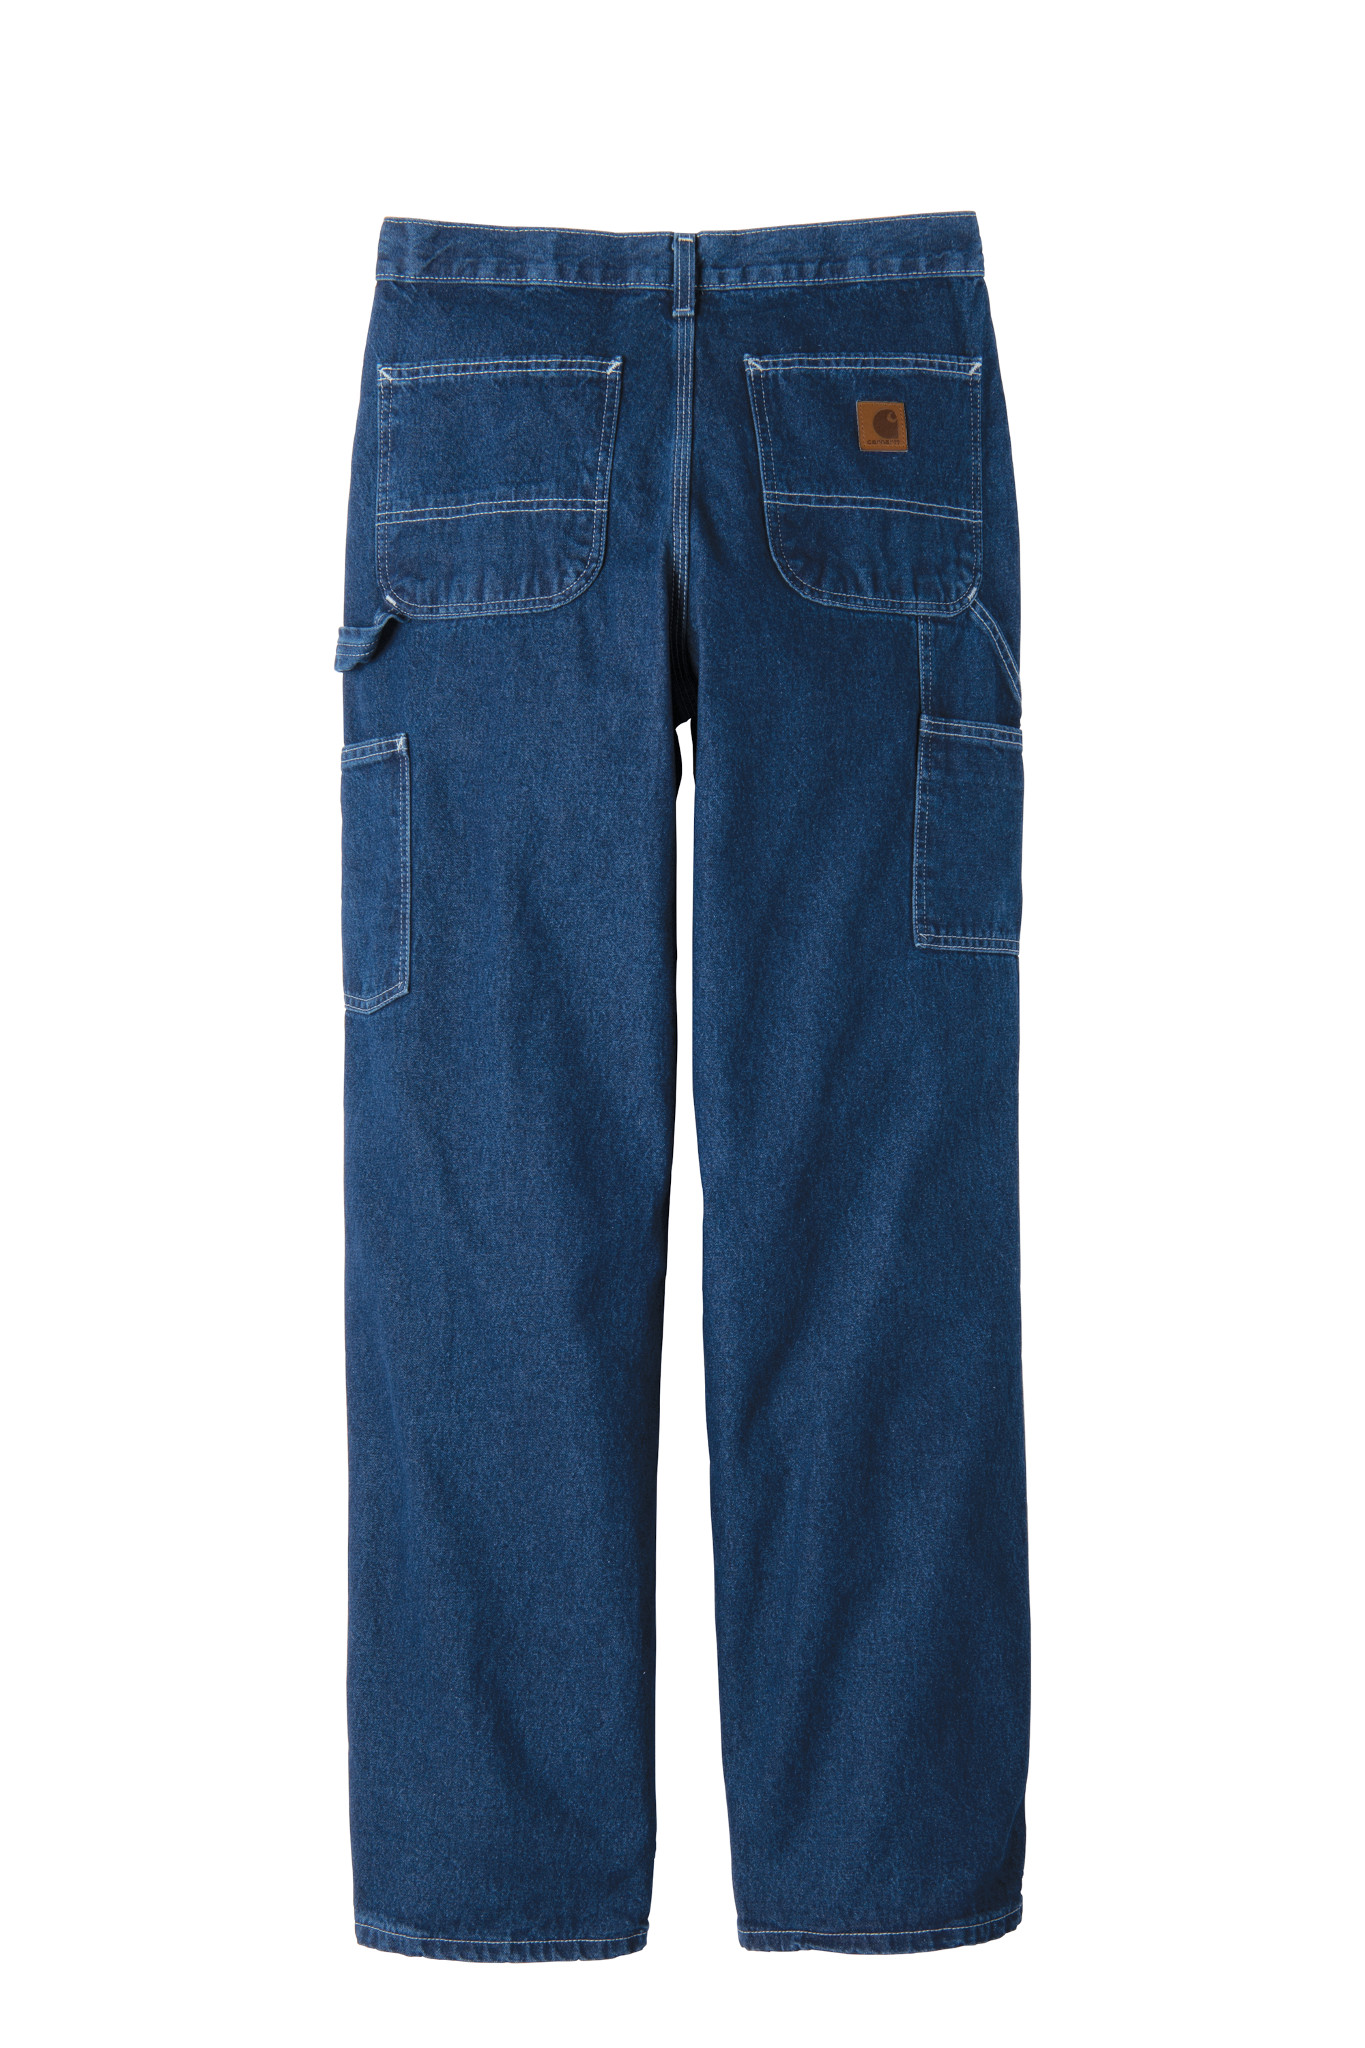 1b7d50c97bc Carhartt ® Loose-Fit Work Dungaree jeansTrophy Trolley